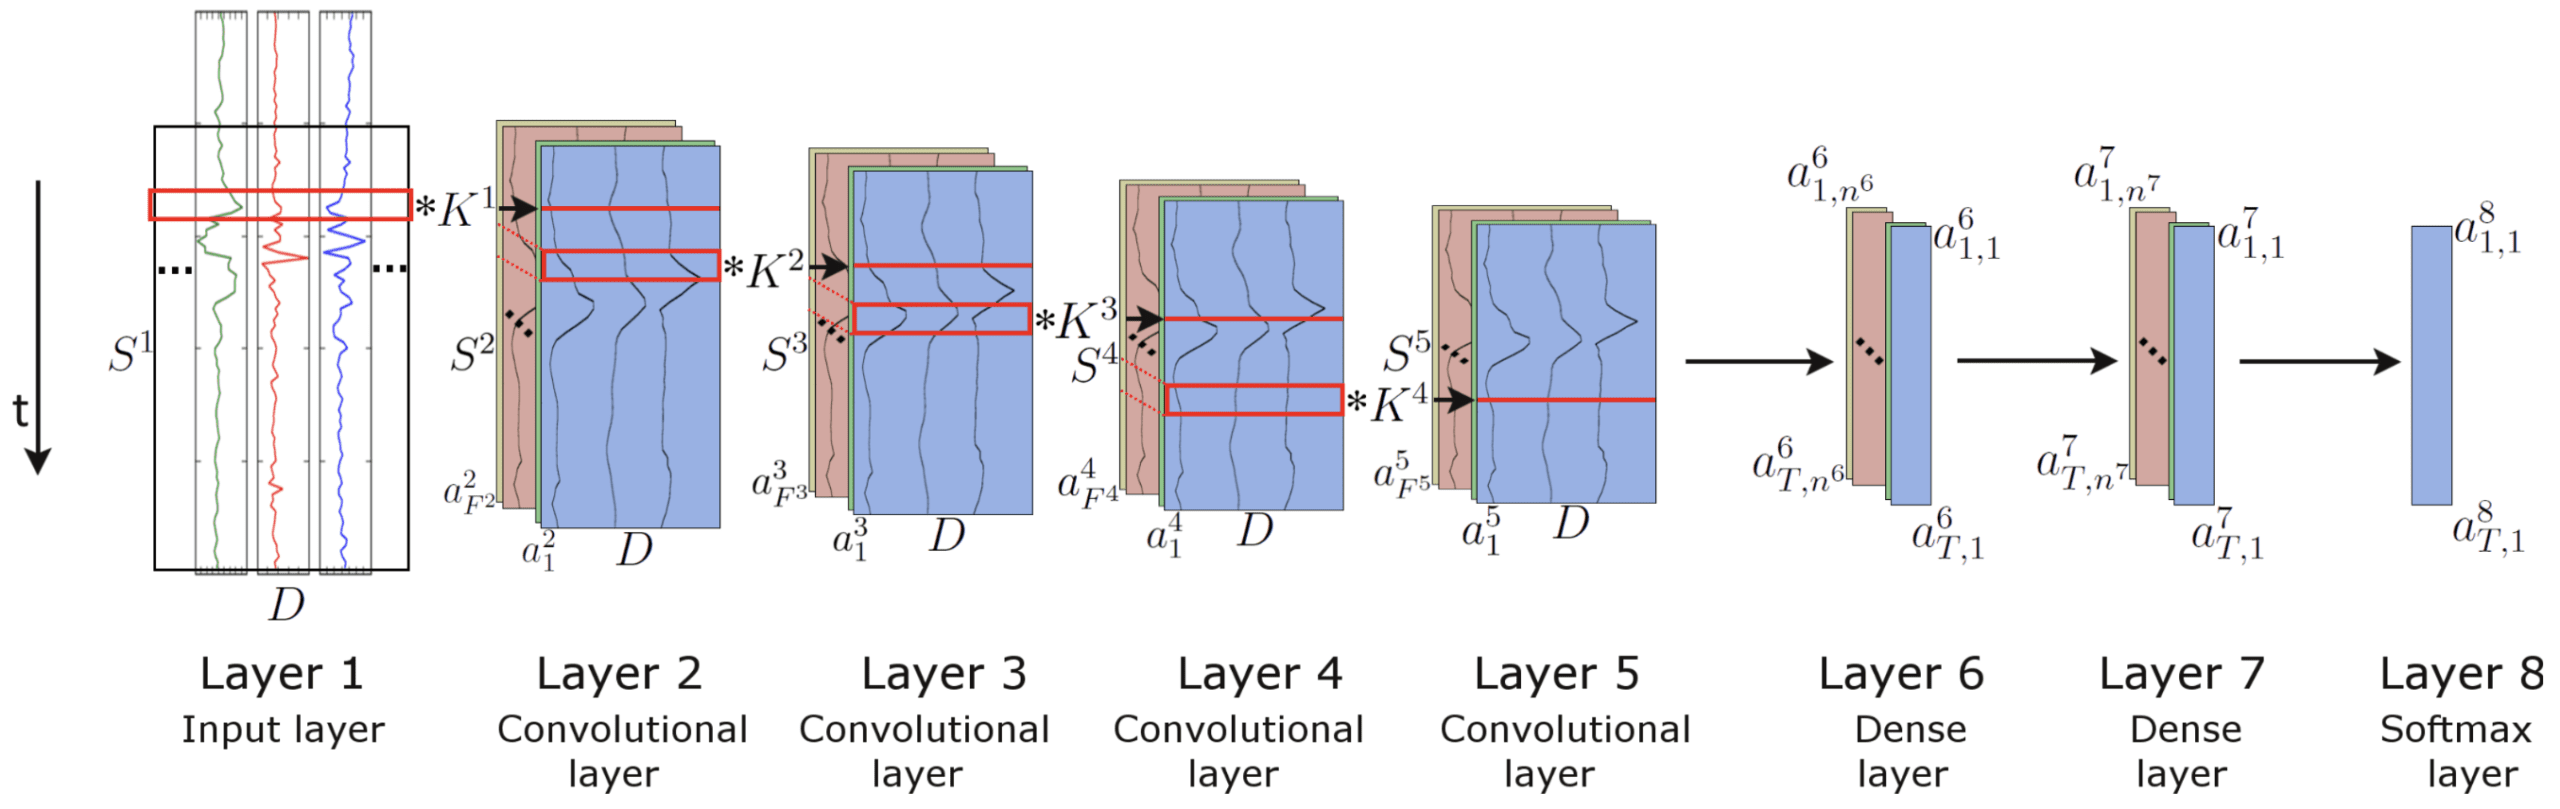 Large Frame Pattern Recognition Deep Learning Models For Human Activity Recognition